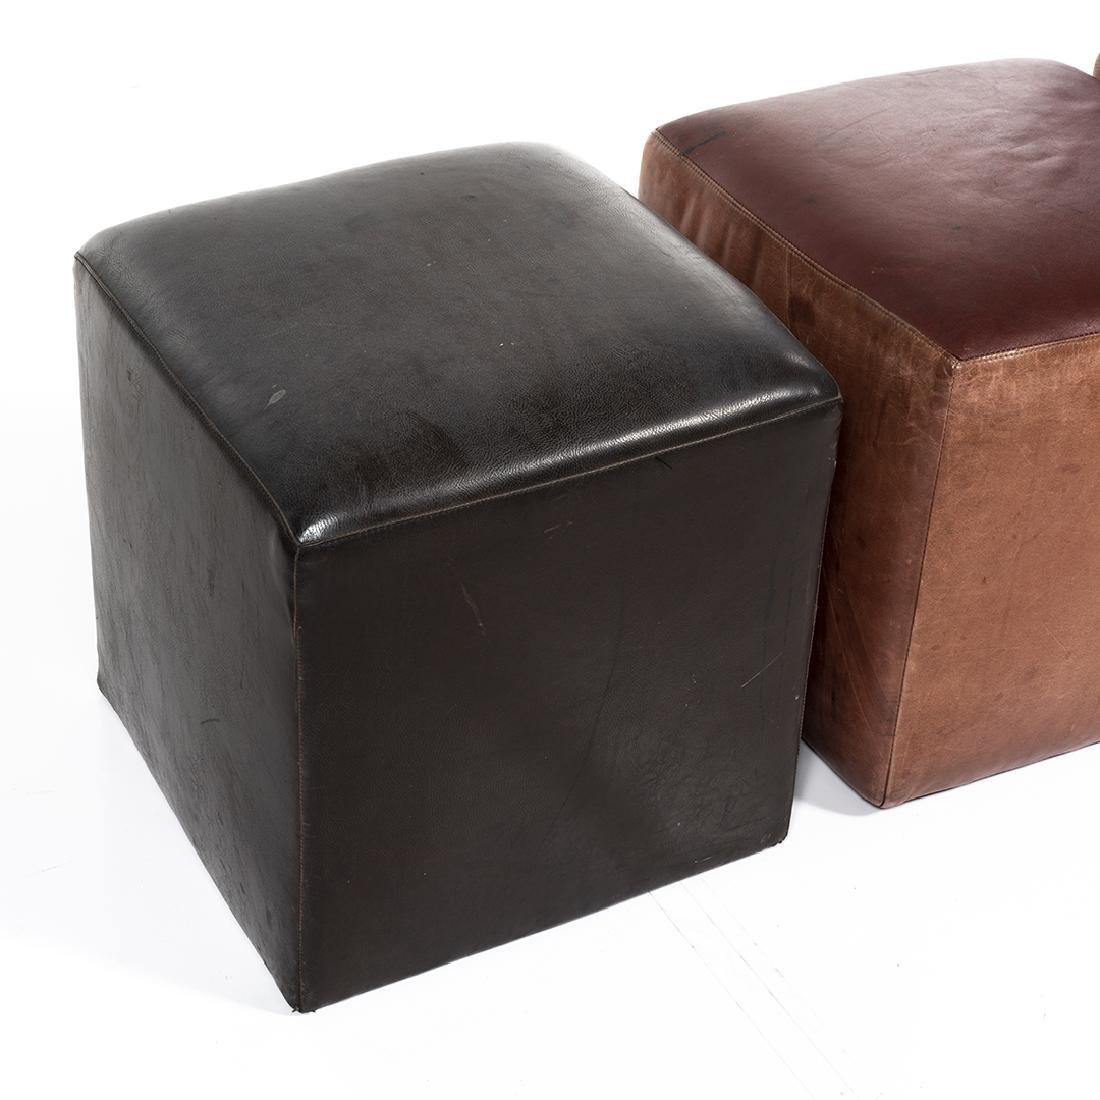 Distressed Leather Ottomans (4) - 5